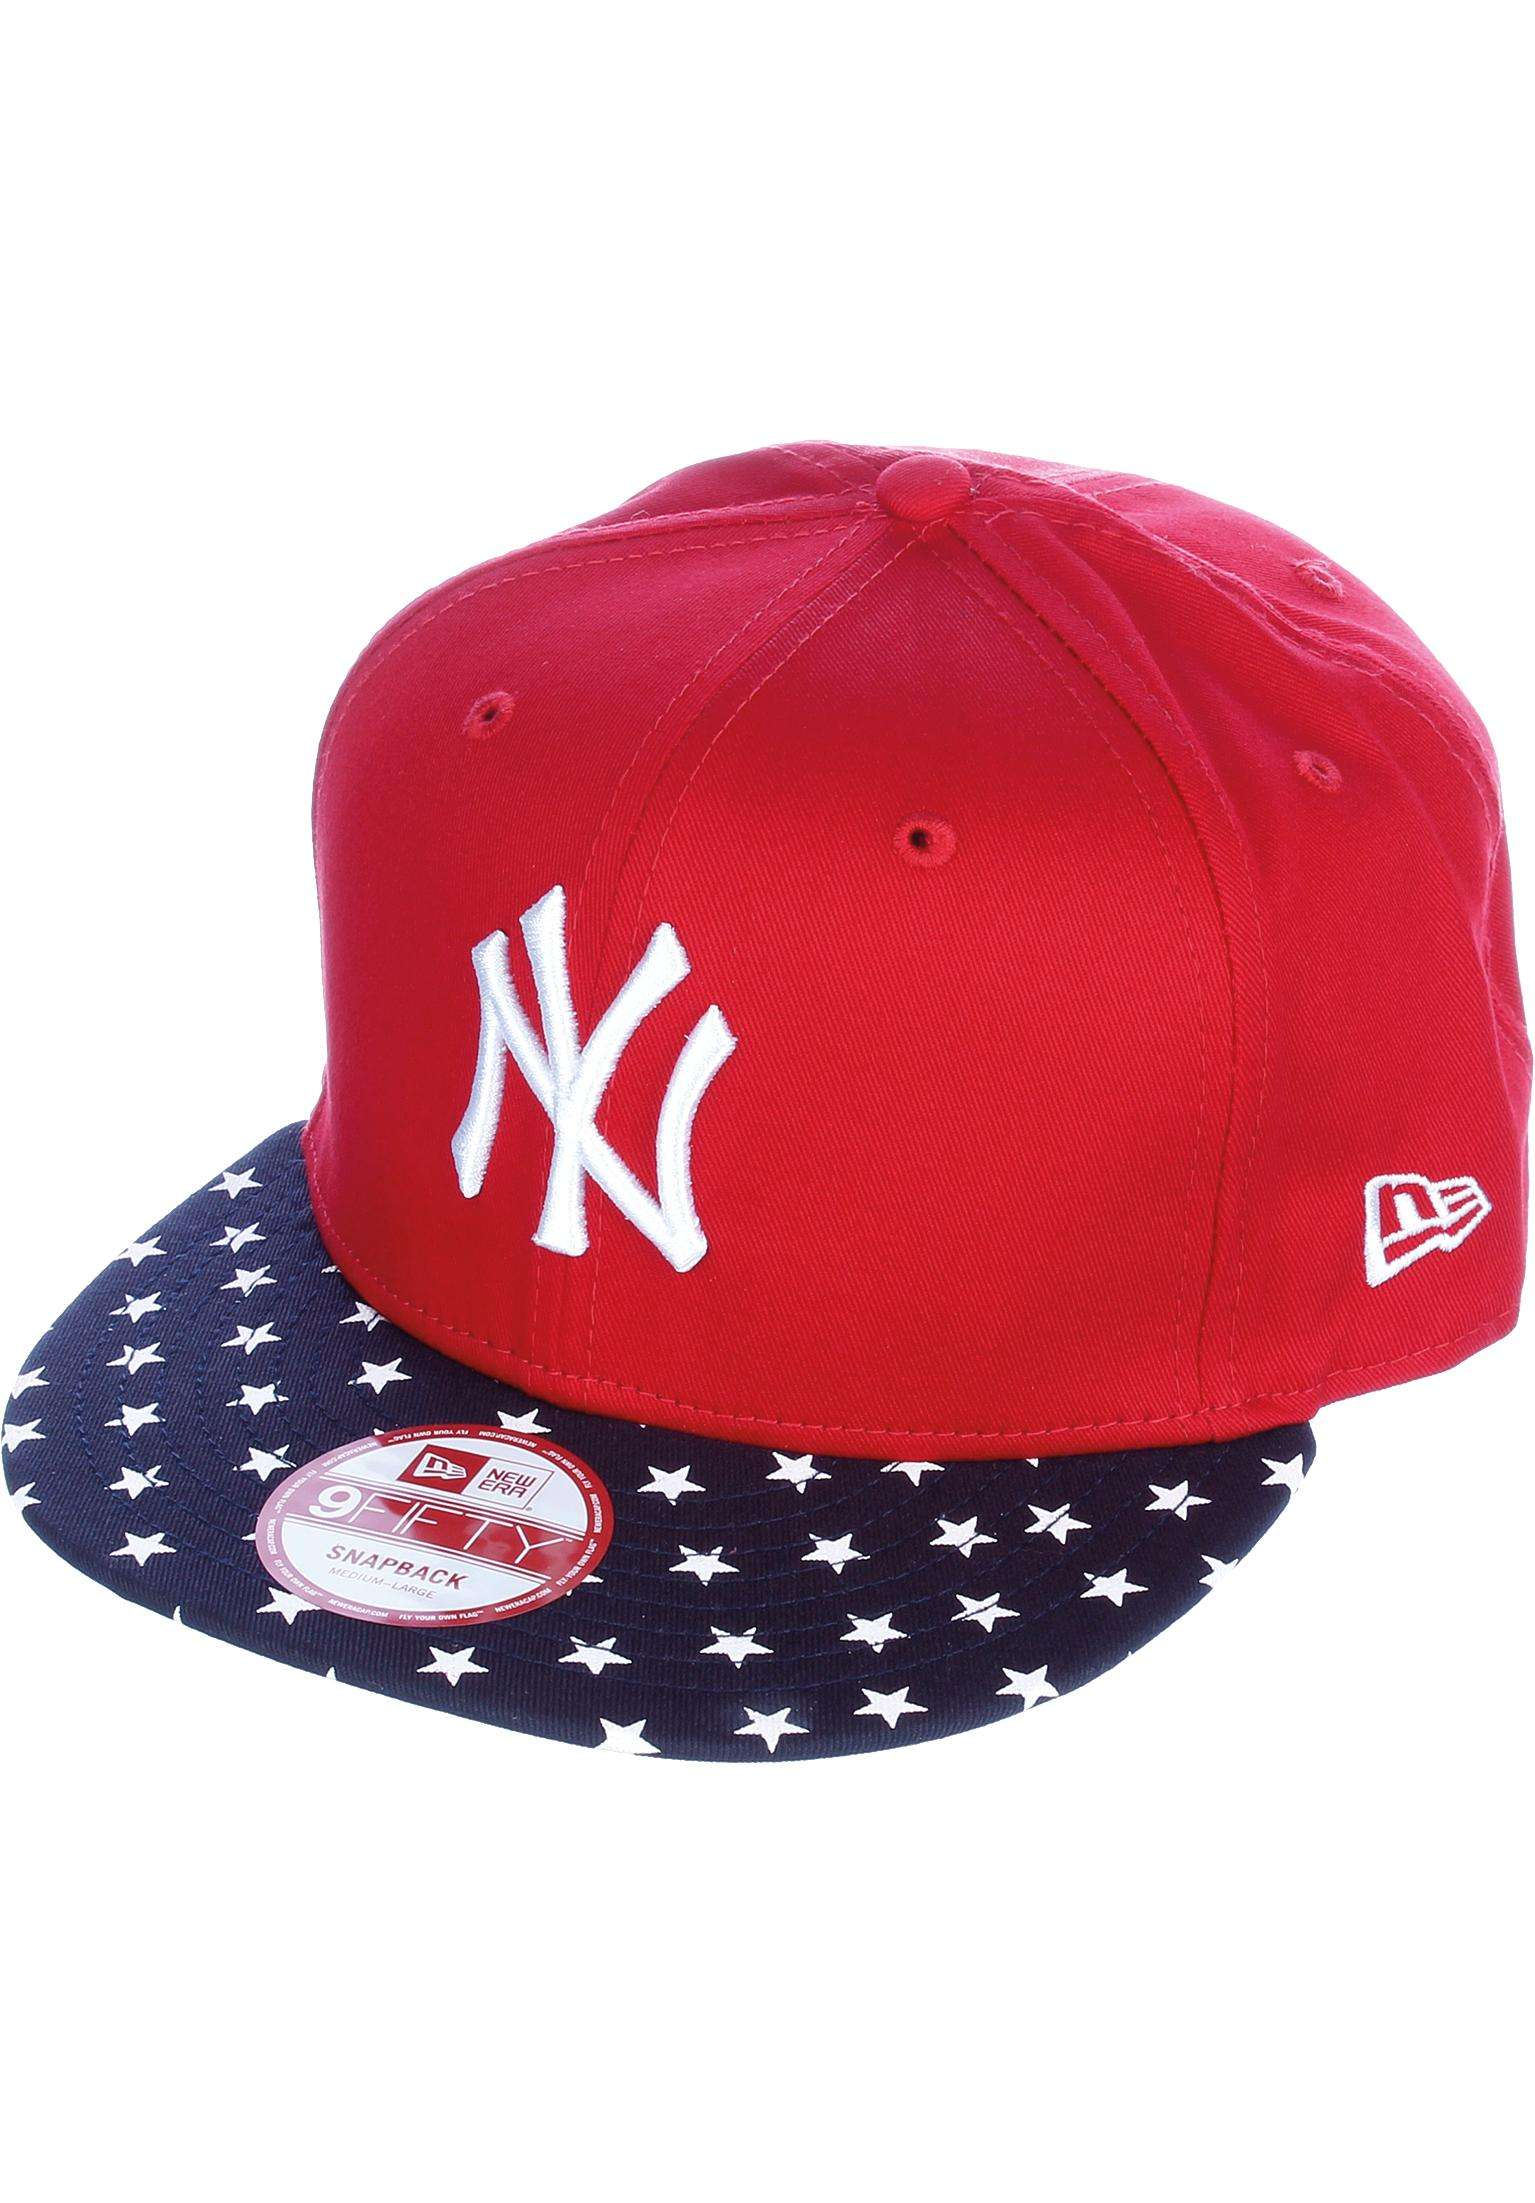 d2706a8b88aff 9Fifty Stars   Stripes New York Yankees New Era Caps in red-navy-white for  Men